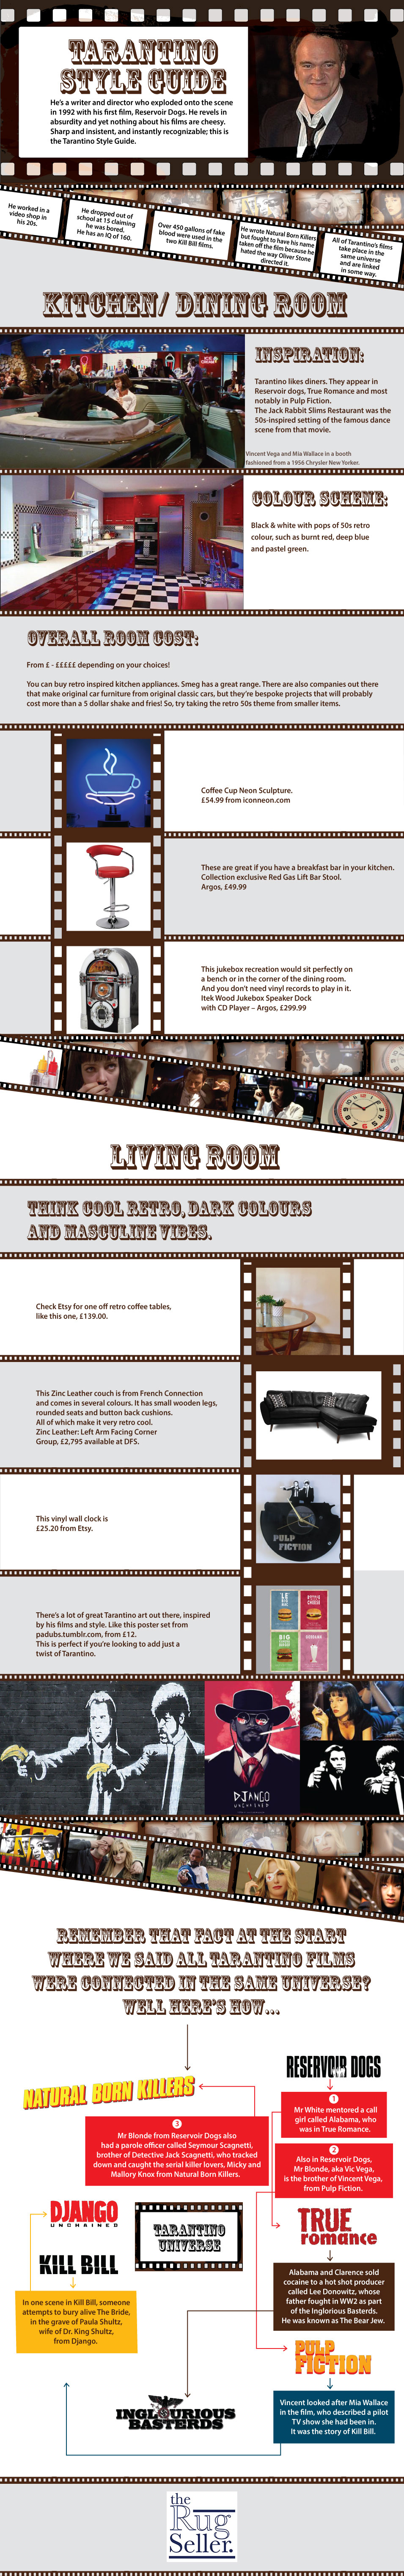 The Tarantino Home Style Guide Infographic